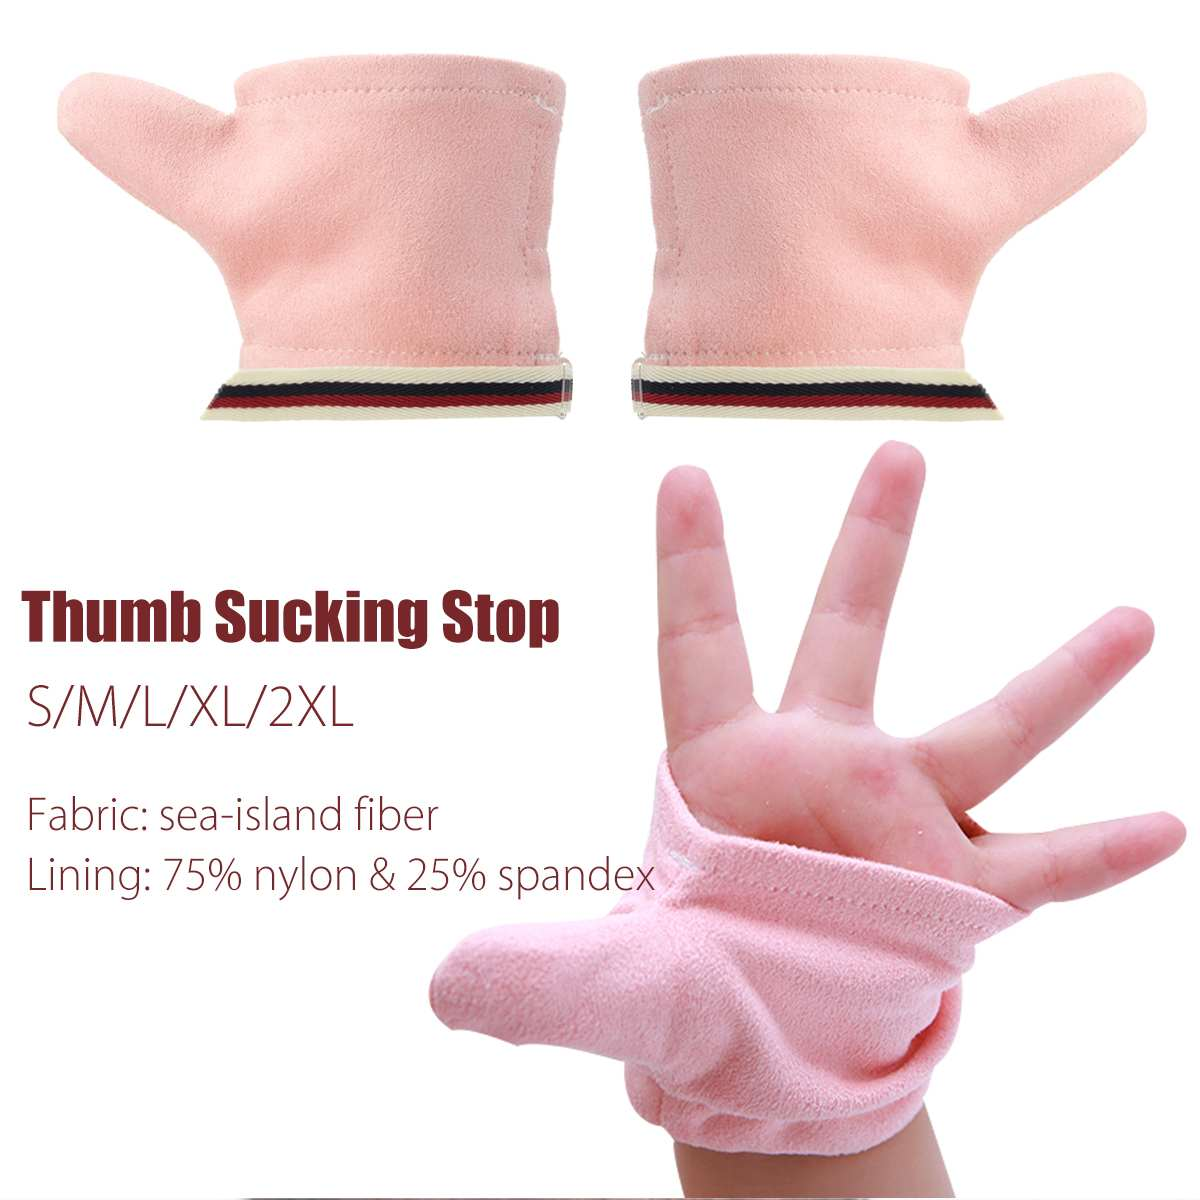 1 Pair Thumb Finger Sucking Stop Gloves Protect Finger Guard For Baby Kids Give Up Sucking Fingers Pink